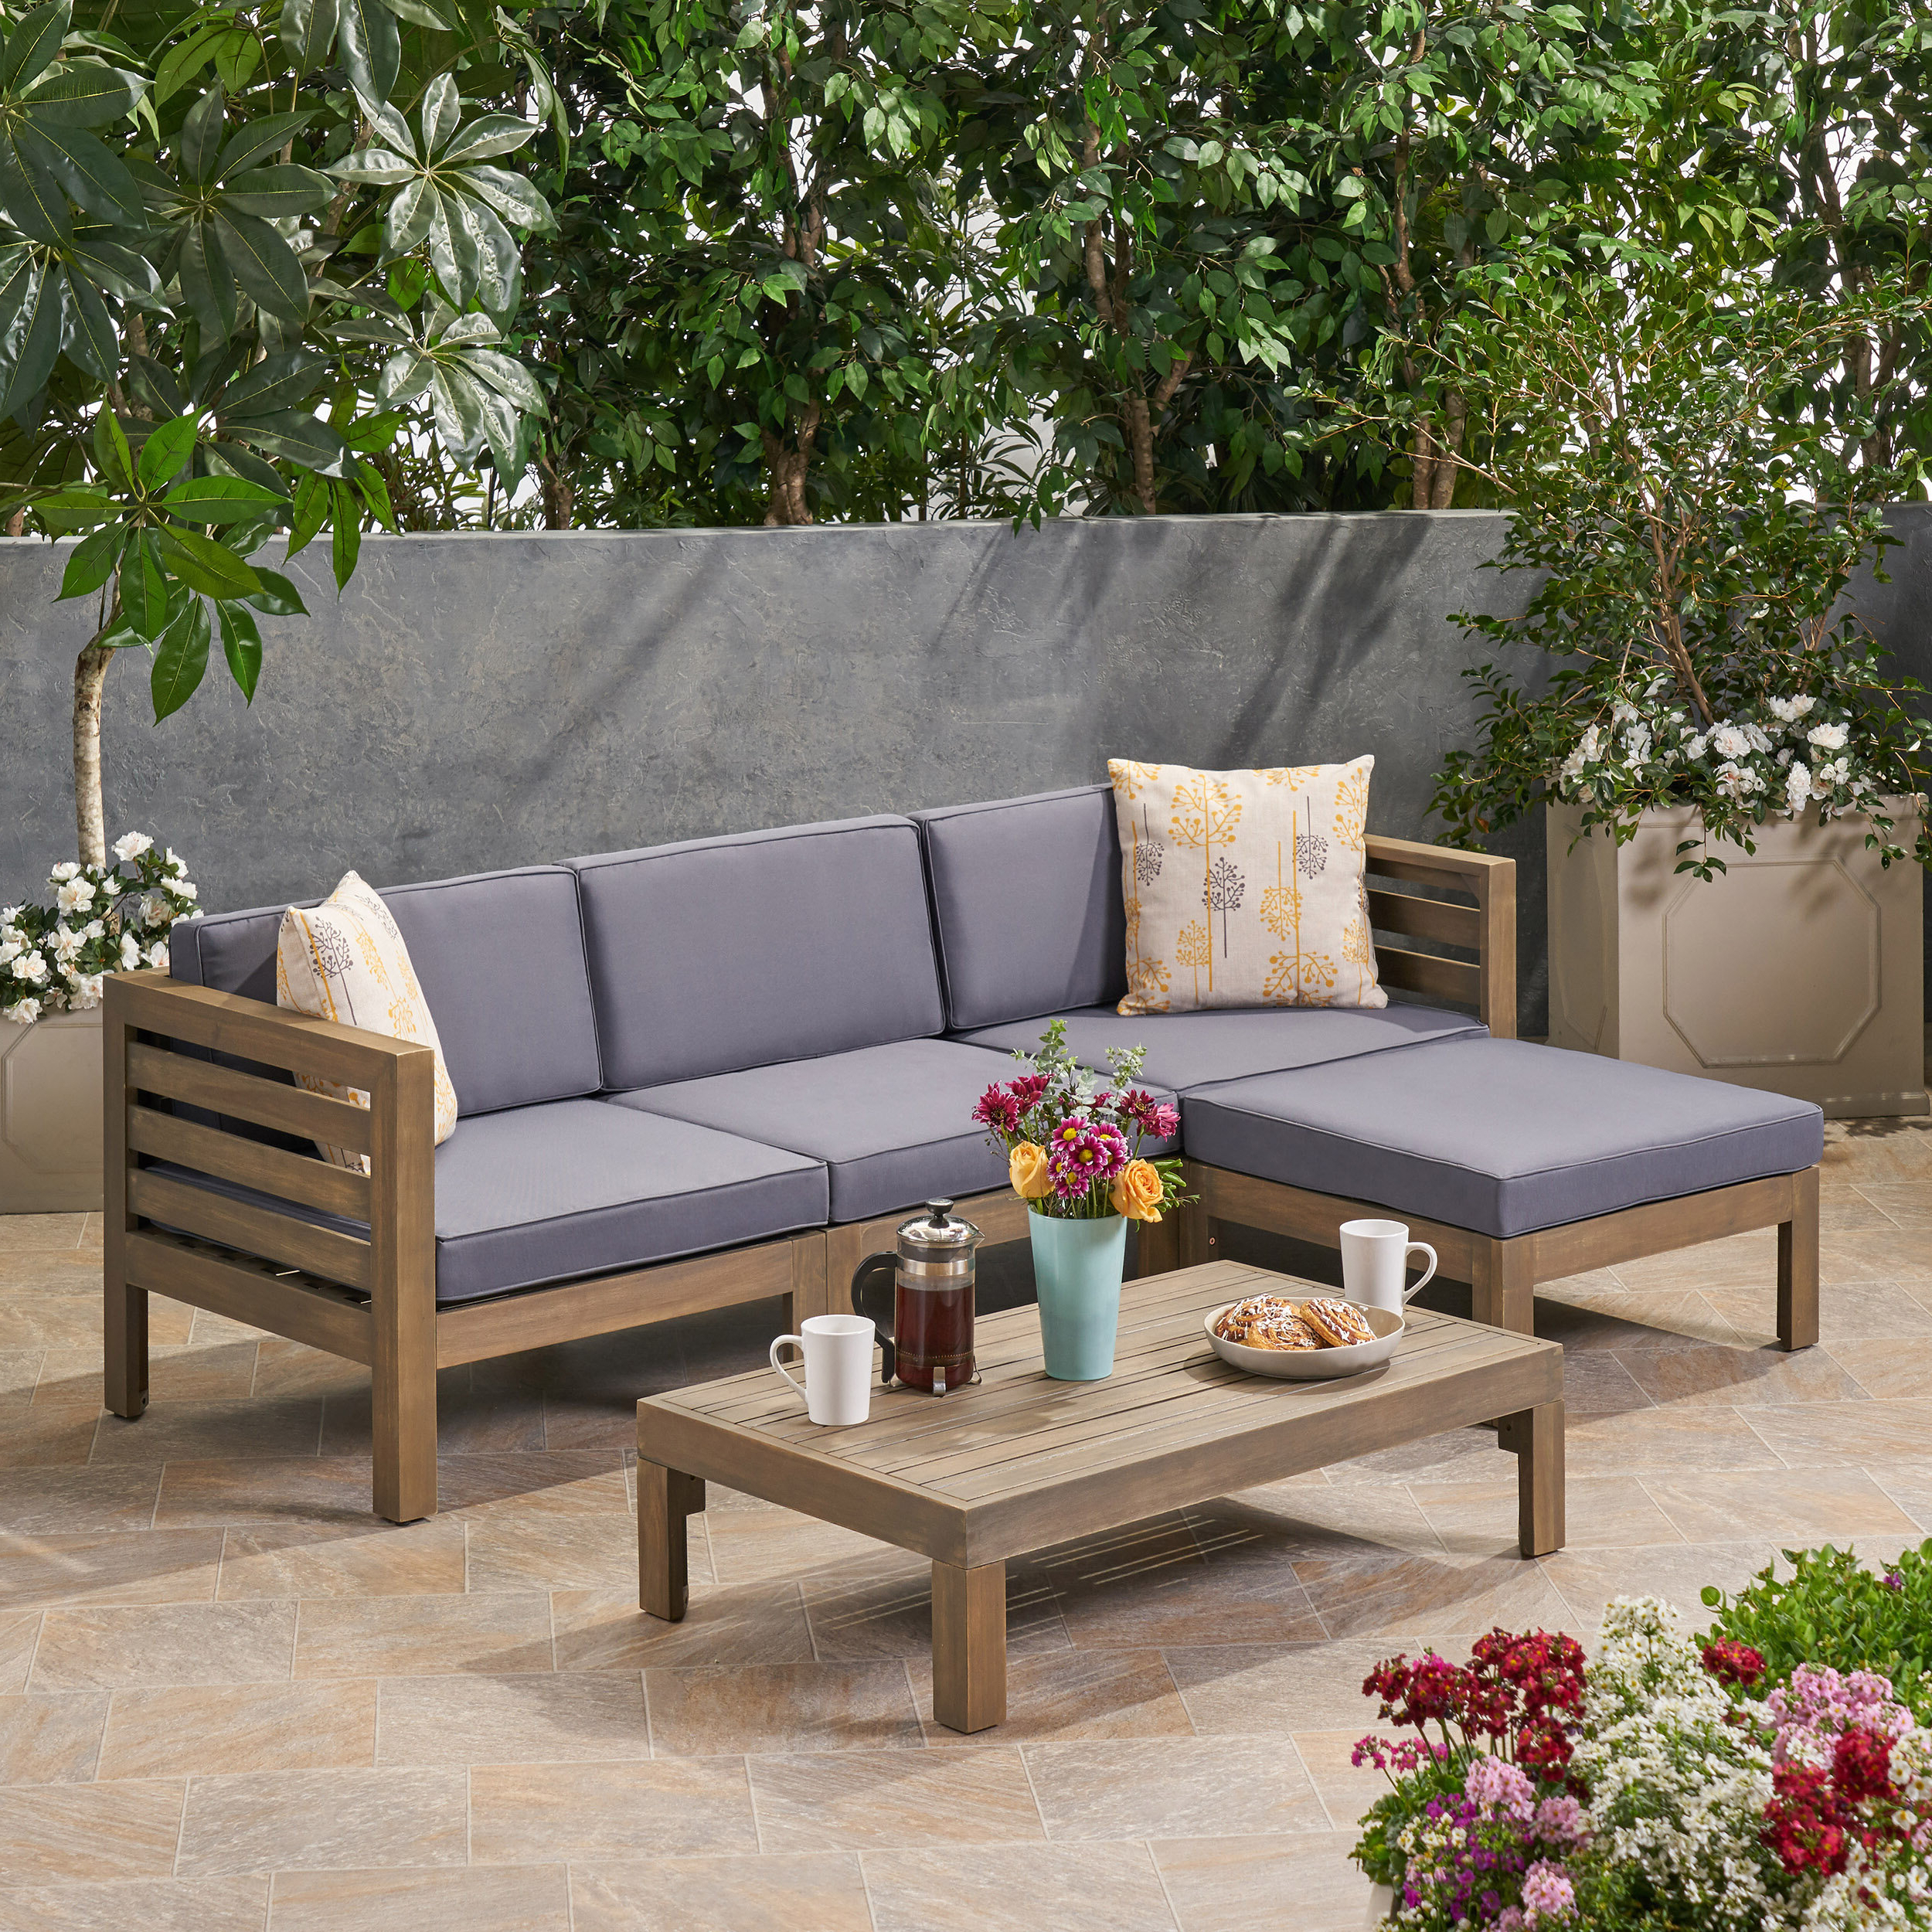 2019 Olinda 3 Piece Sectionals Seating Group With Cushions Intended For Dwayne Outdoor 5 Piece Sectional Seating Group With Cushions (View 20 of 25)